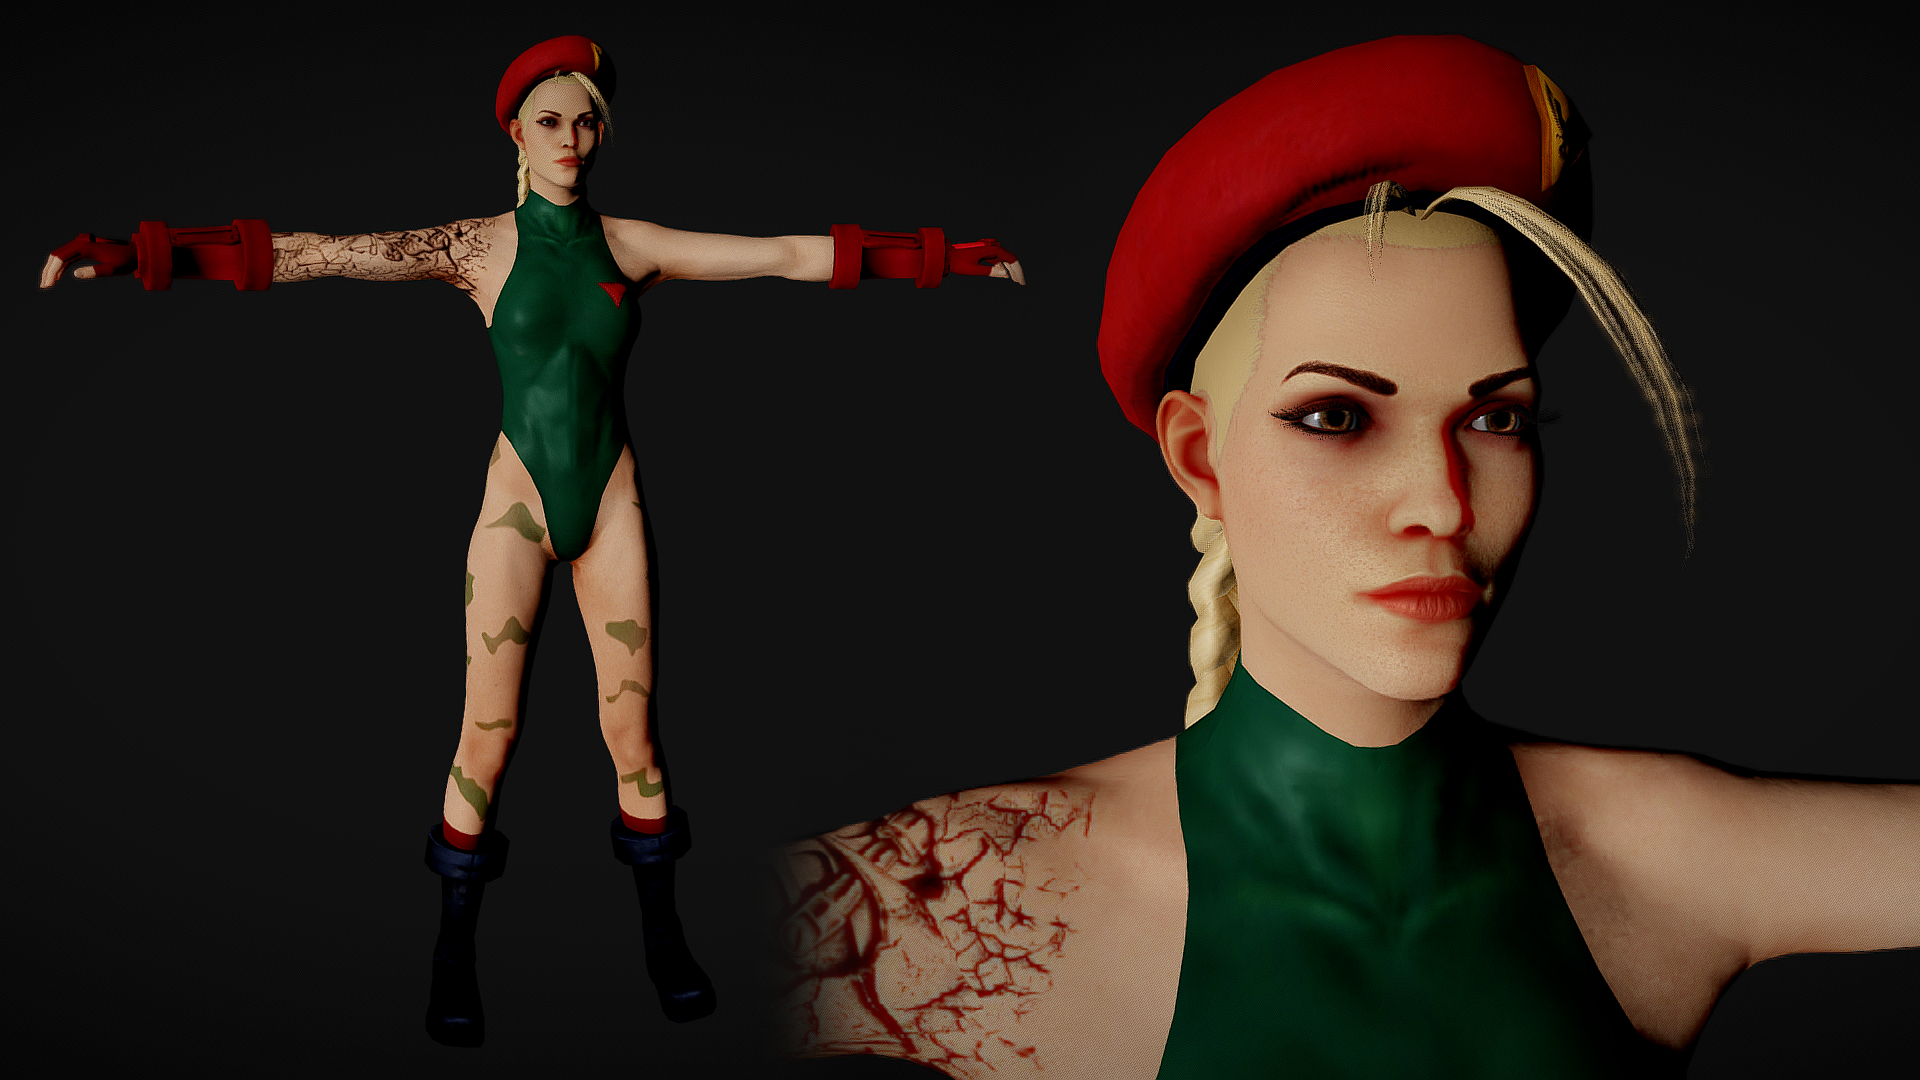 Shelly bombshel street fighter cammy 0